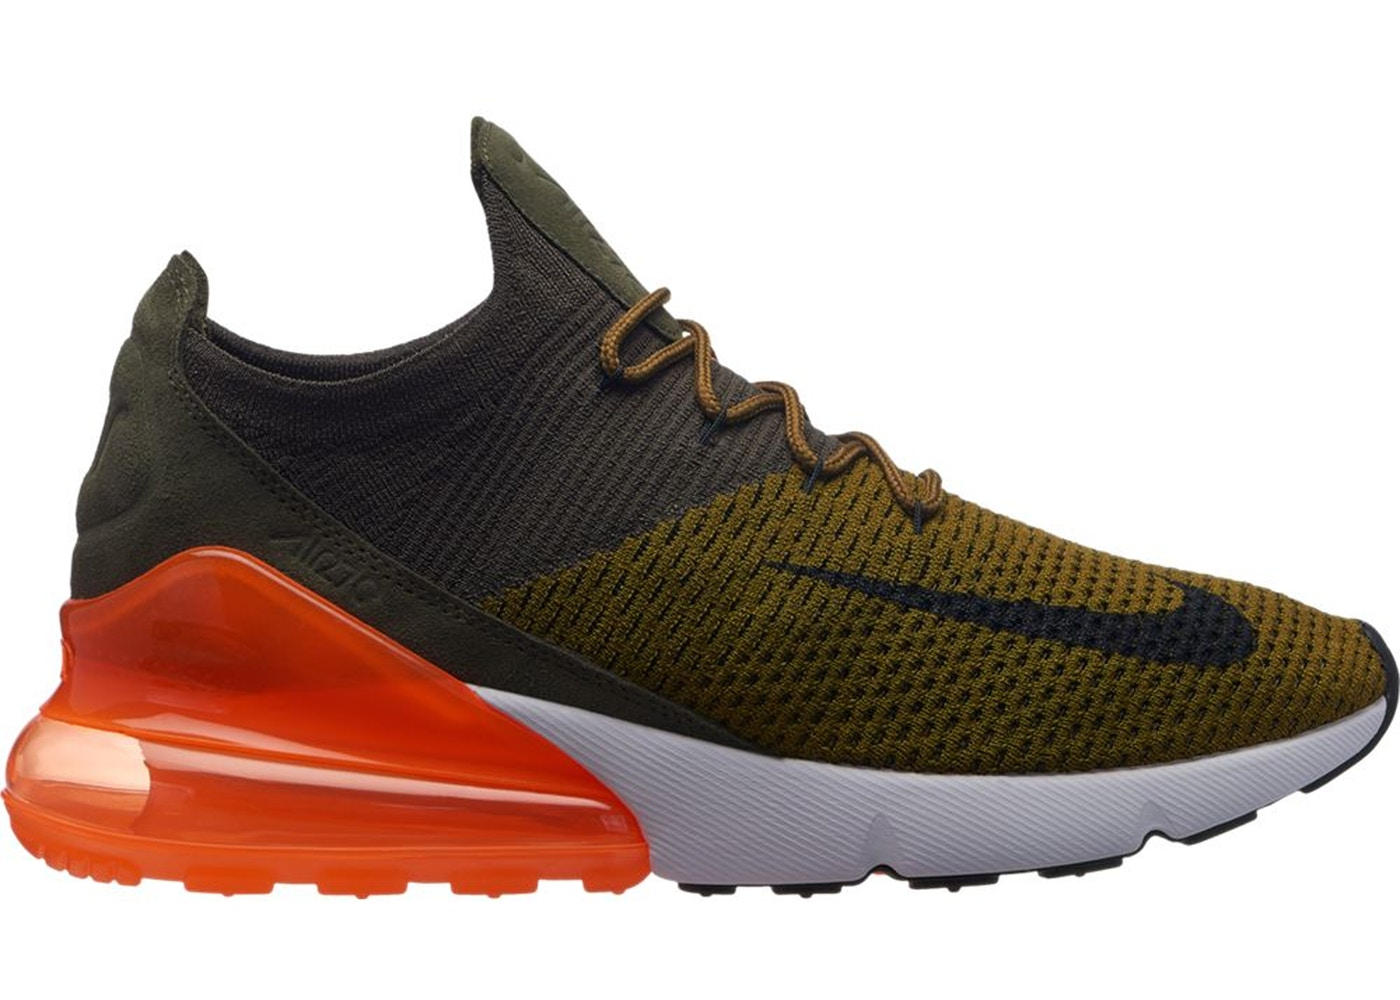 Air Max 270 Flyknit Olive Flak Total Orange